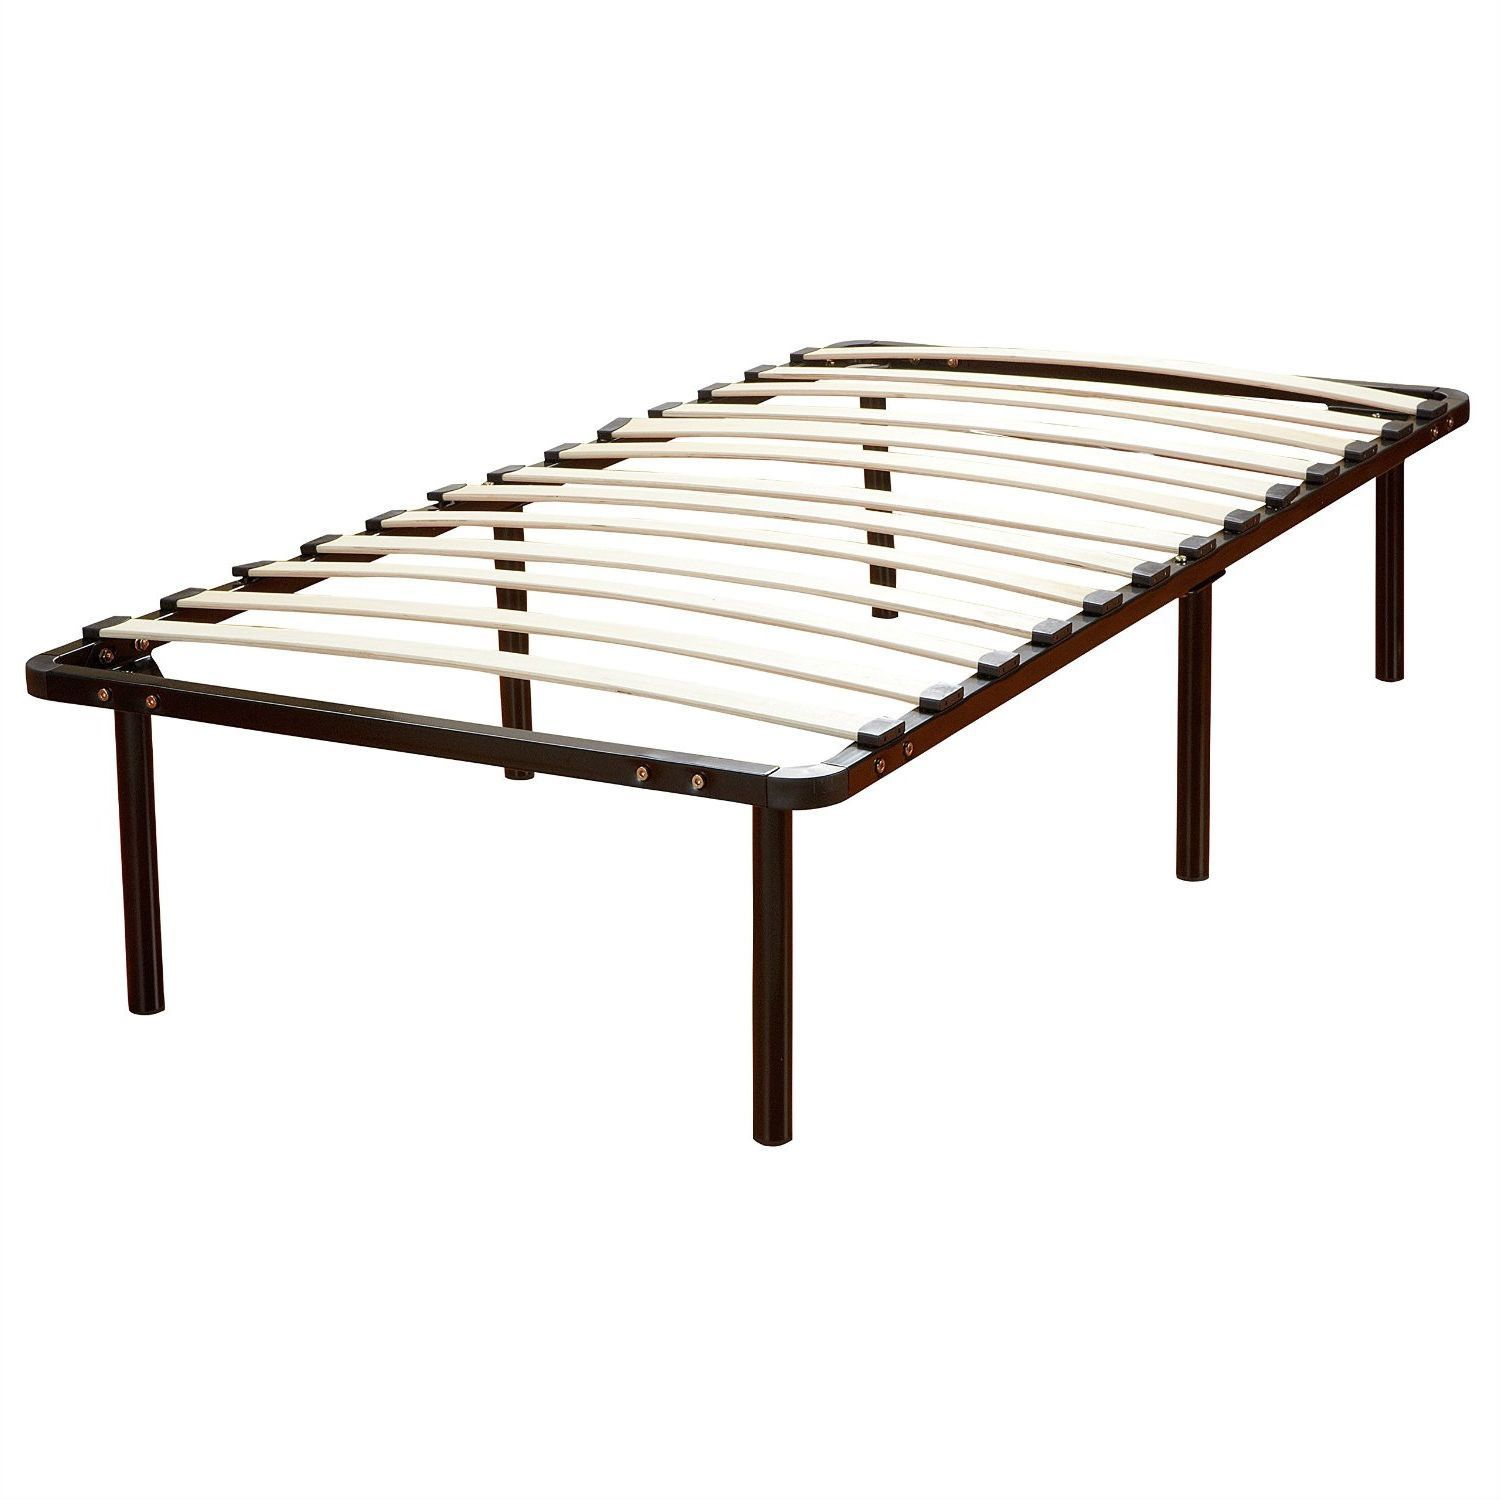 Queen Size Platform Bed Frame with Wood Slats No Boxspring